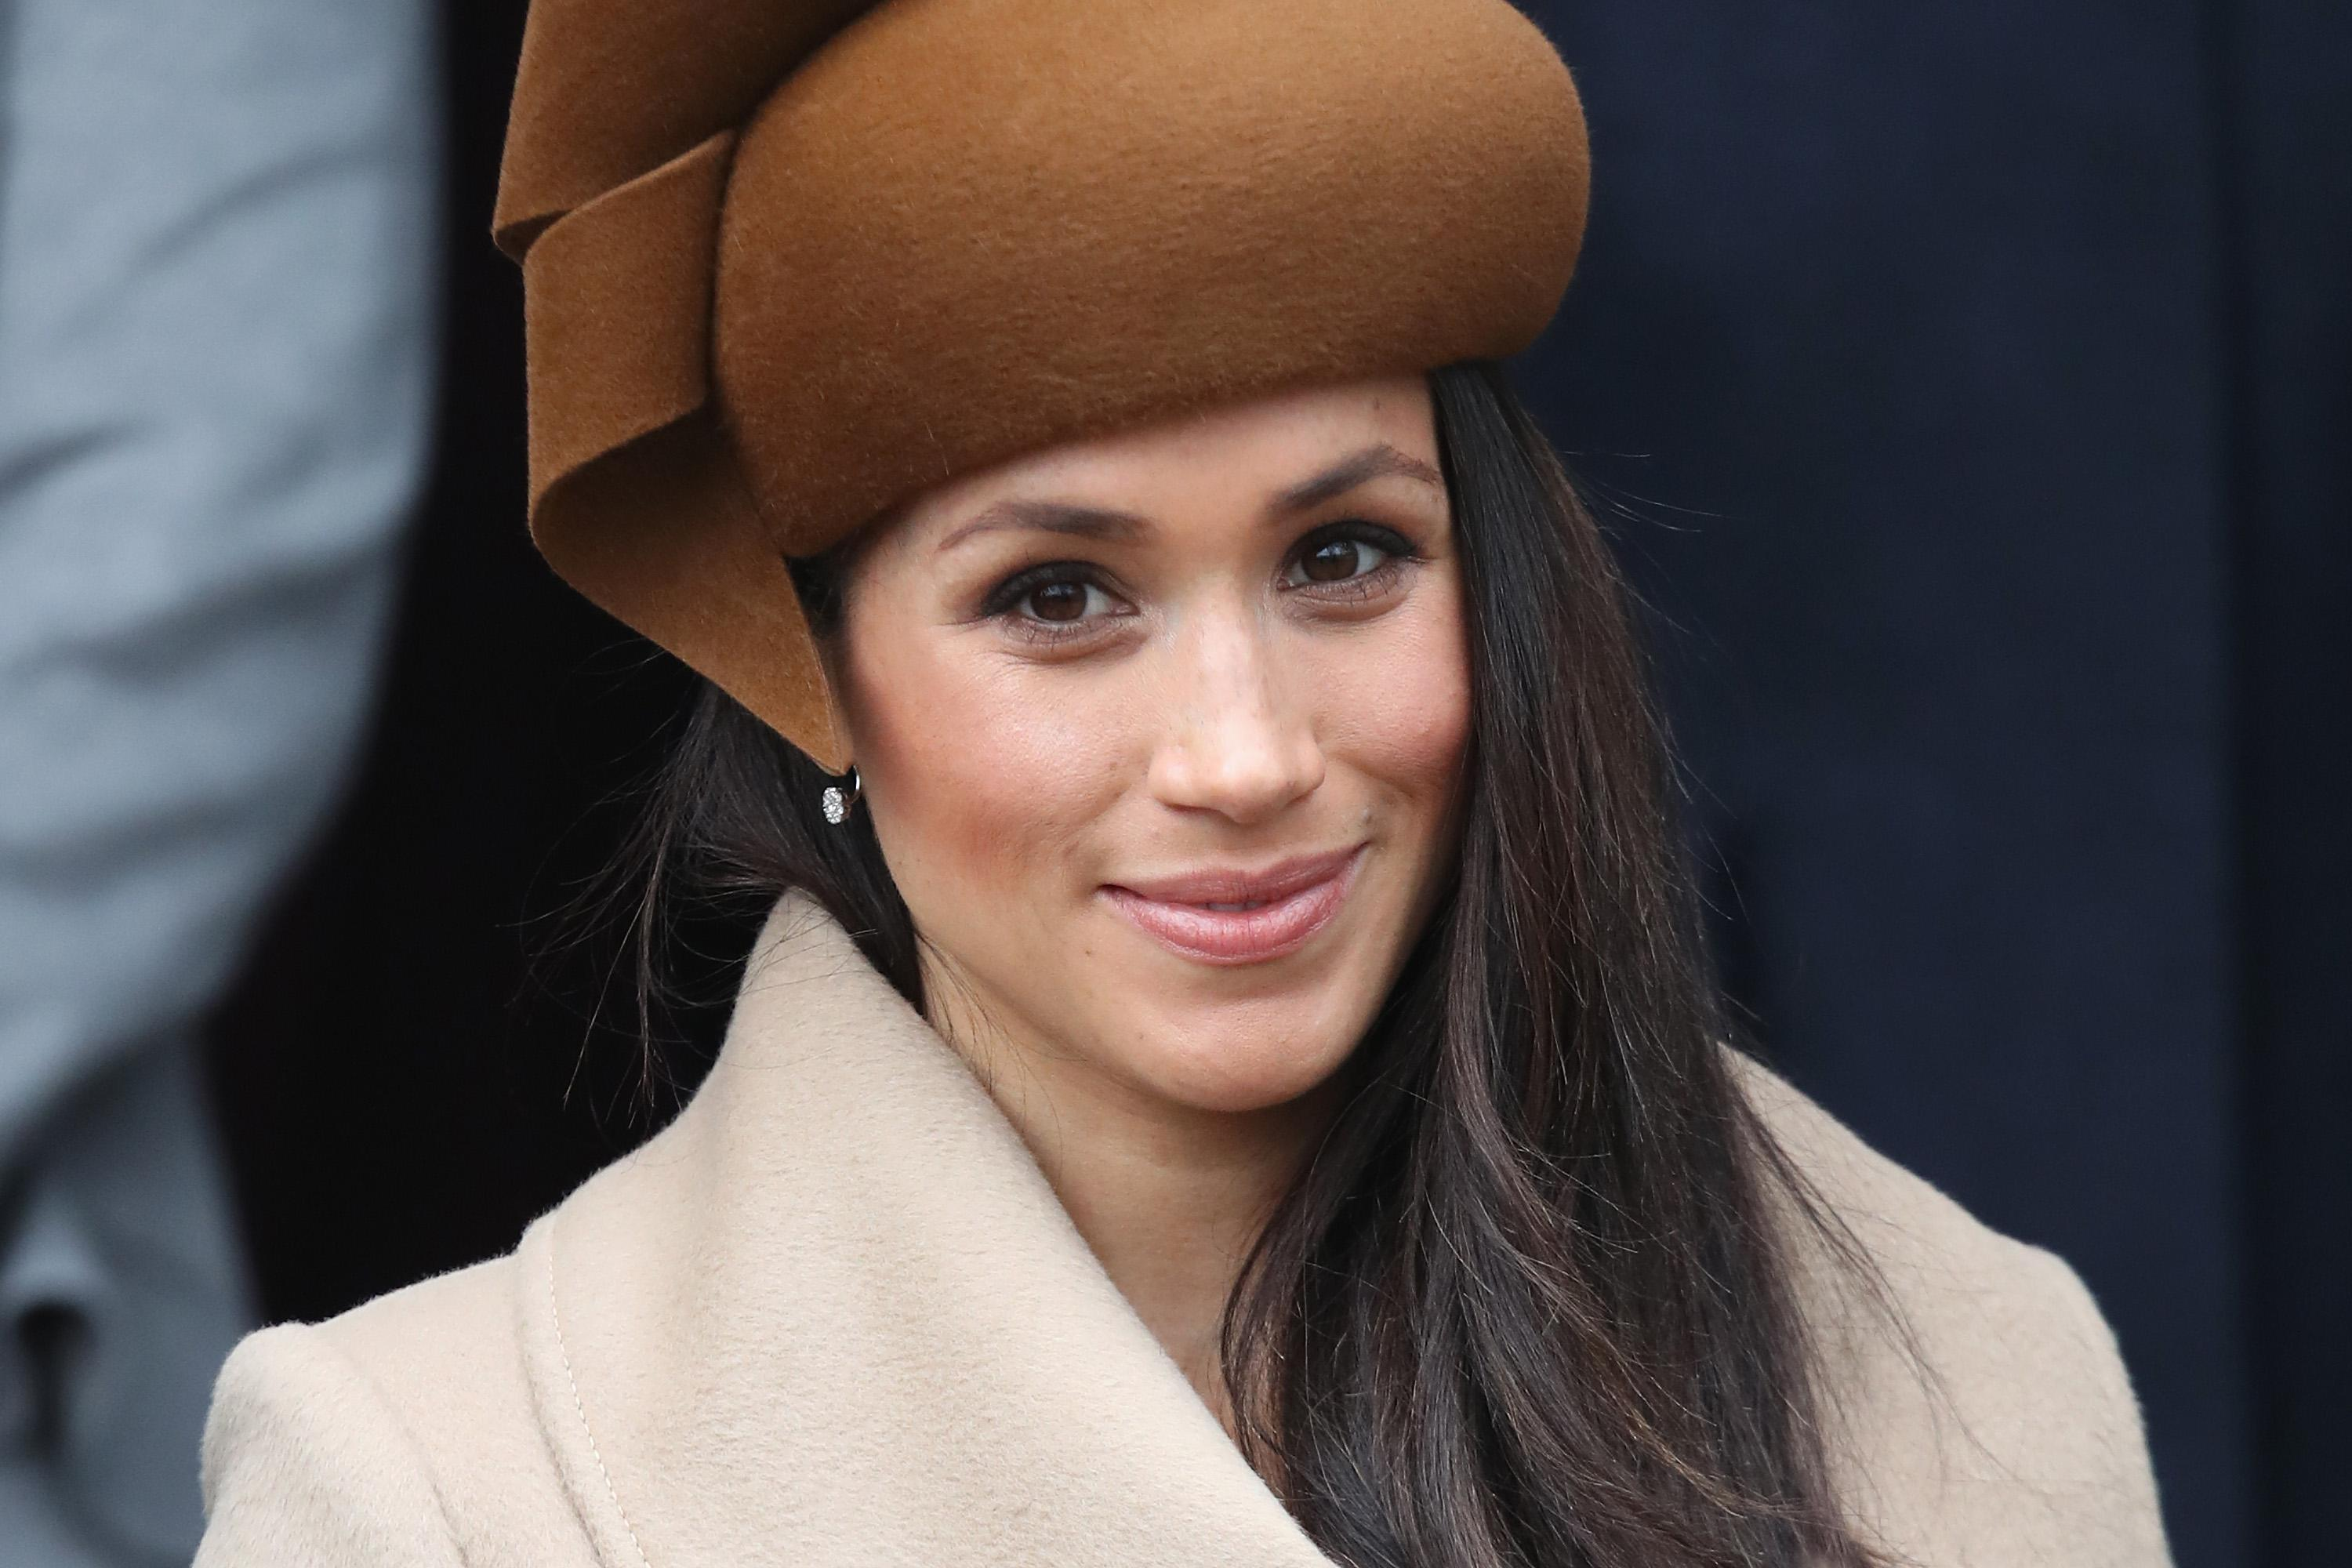 Meghan Markle On Her New Year's Resolutions